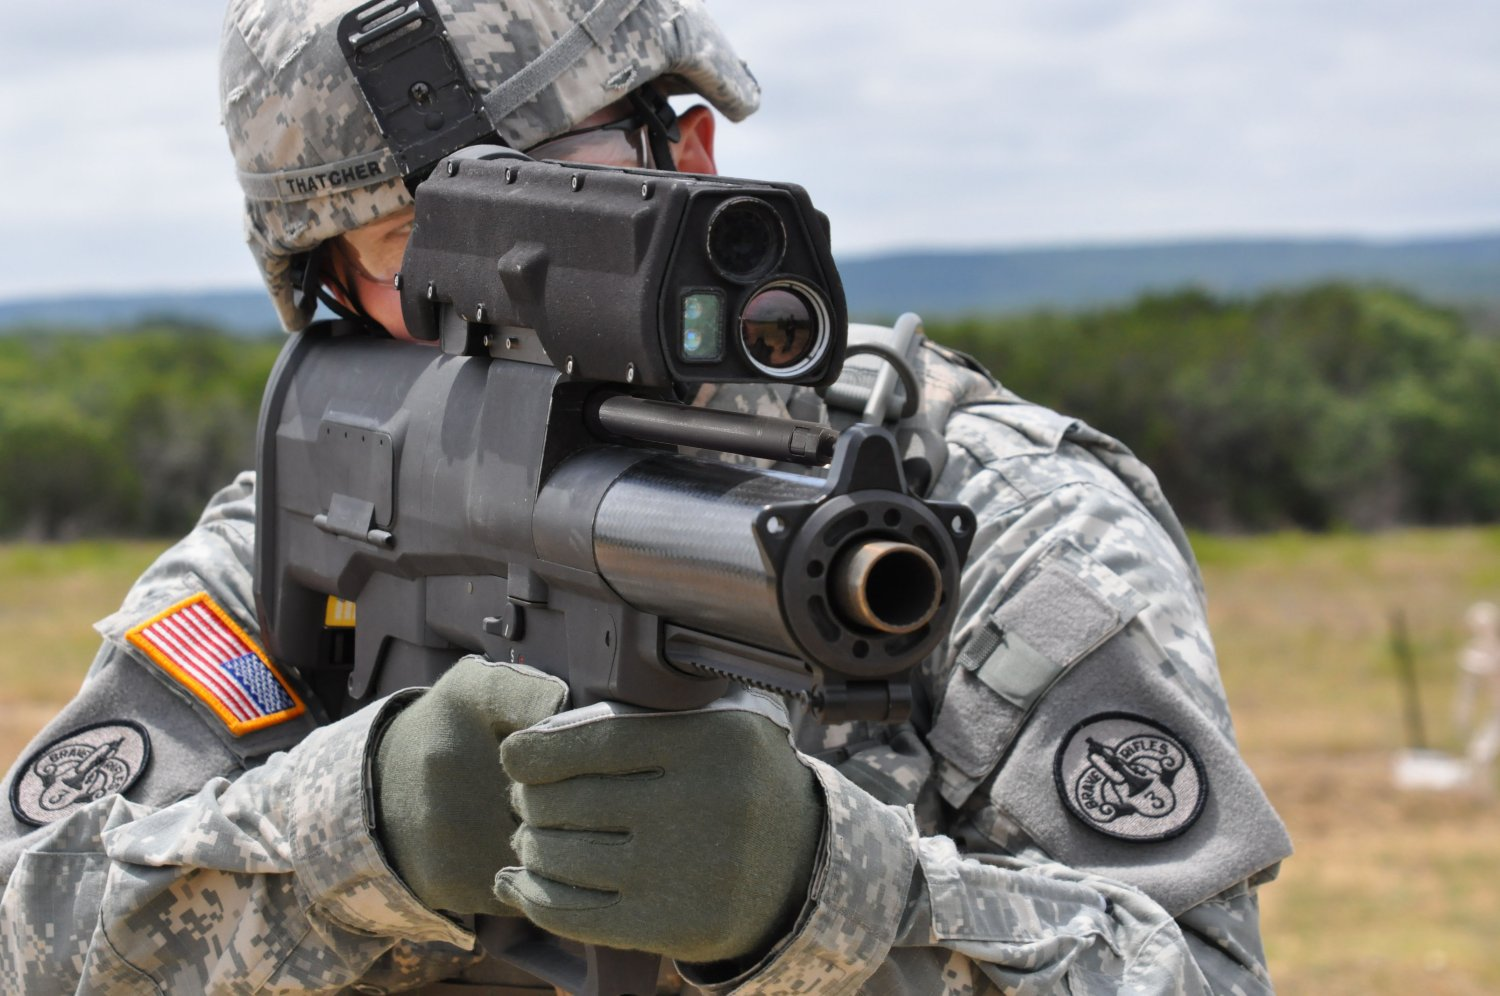 <!--:en-->PEO Soldier Releases New ATK XM25 (also written XM-25) Counter Defilade Target Engagement (CDTE) System 25mm Airburst Grenade Launcher Promotional Video<!--:-->